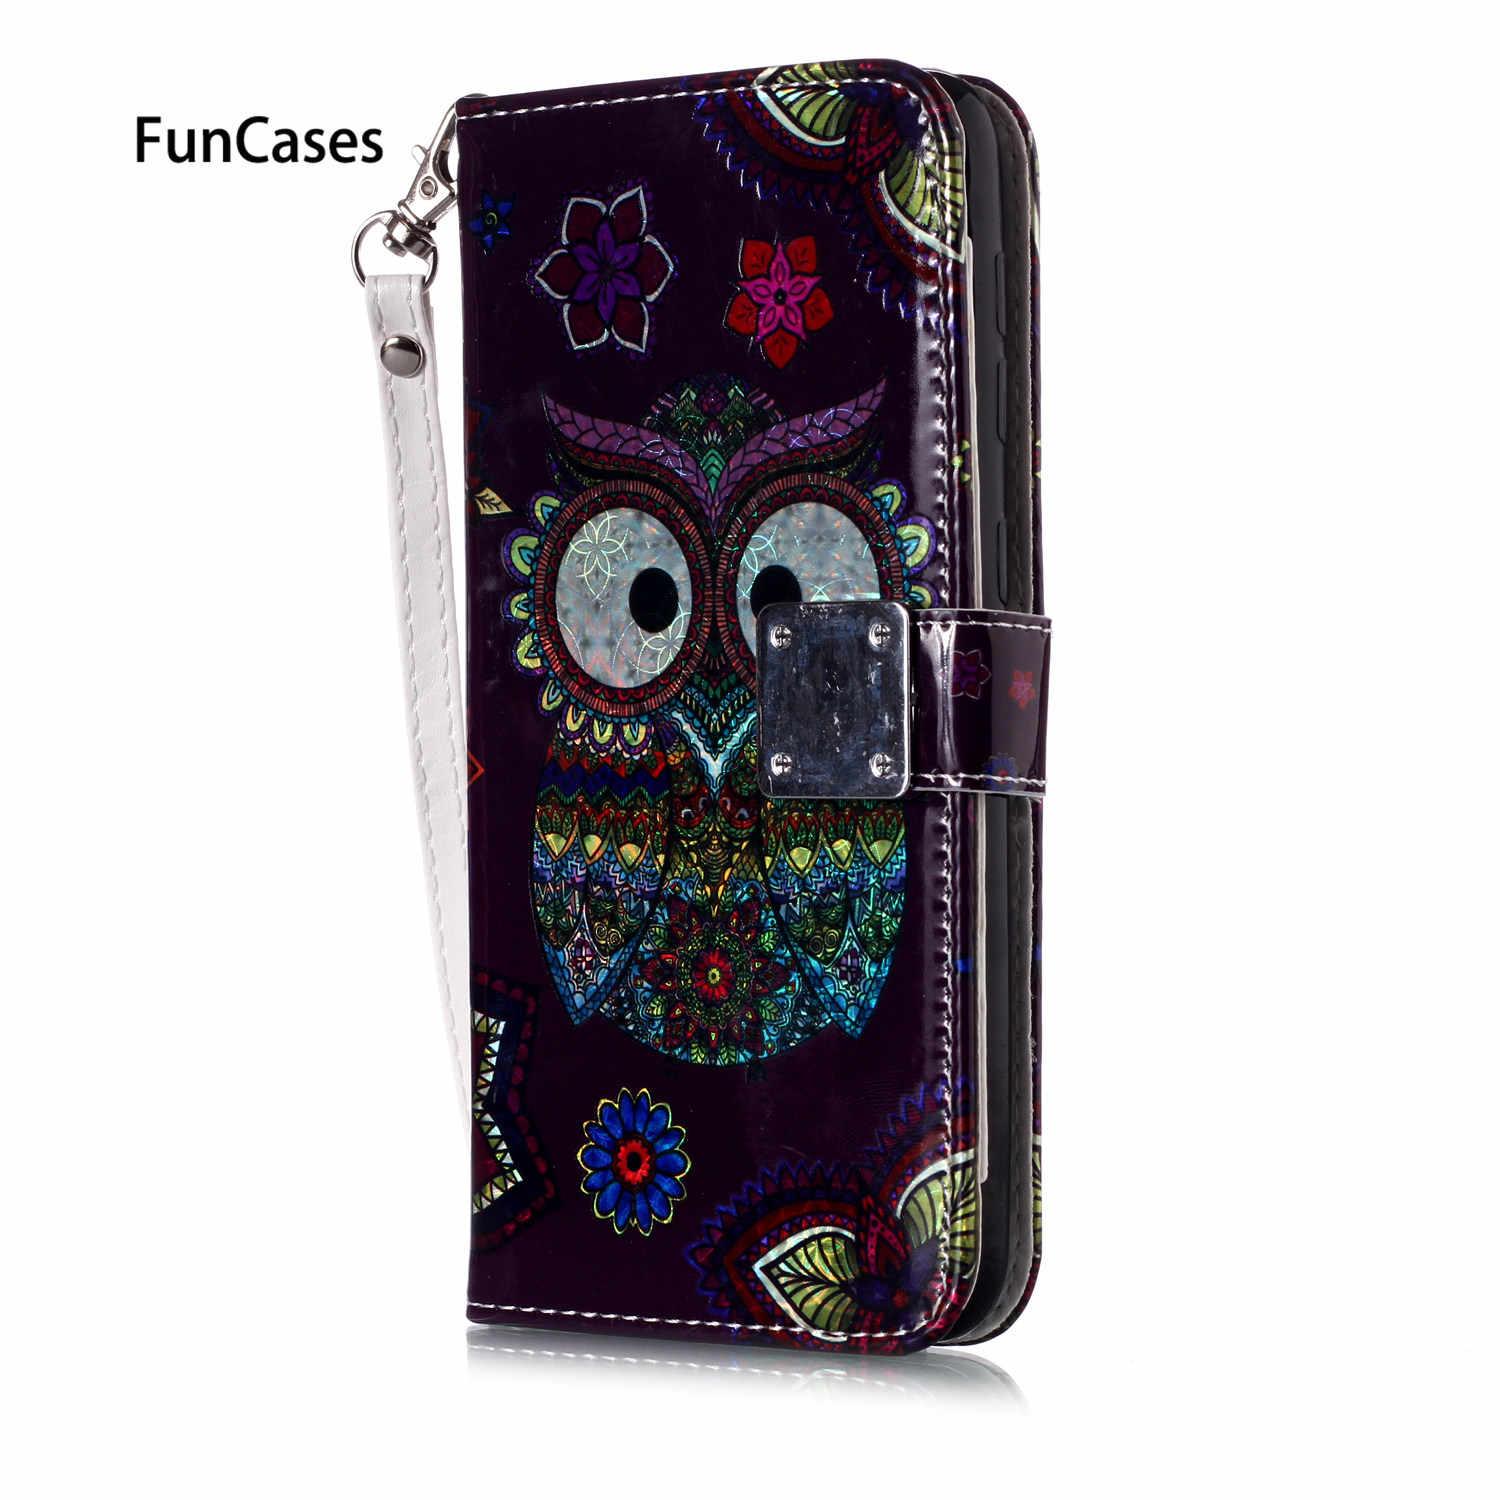 Tower PU Leather Phone Bag For estojo Samsung M20 Cellular Csse sFor Samsung Galaxy ajax M10 J4 Plus M30 J2 Prime J330 J530 J6